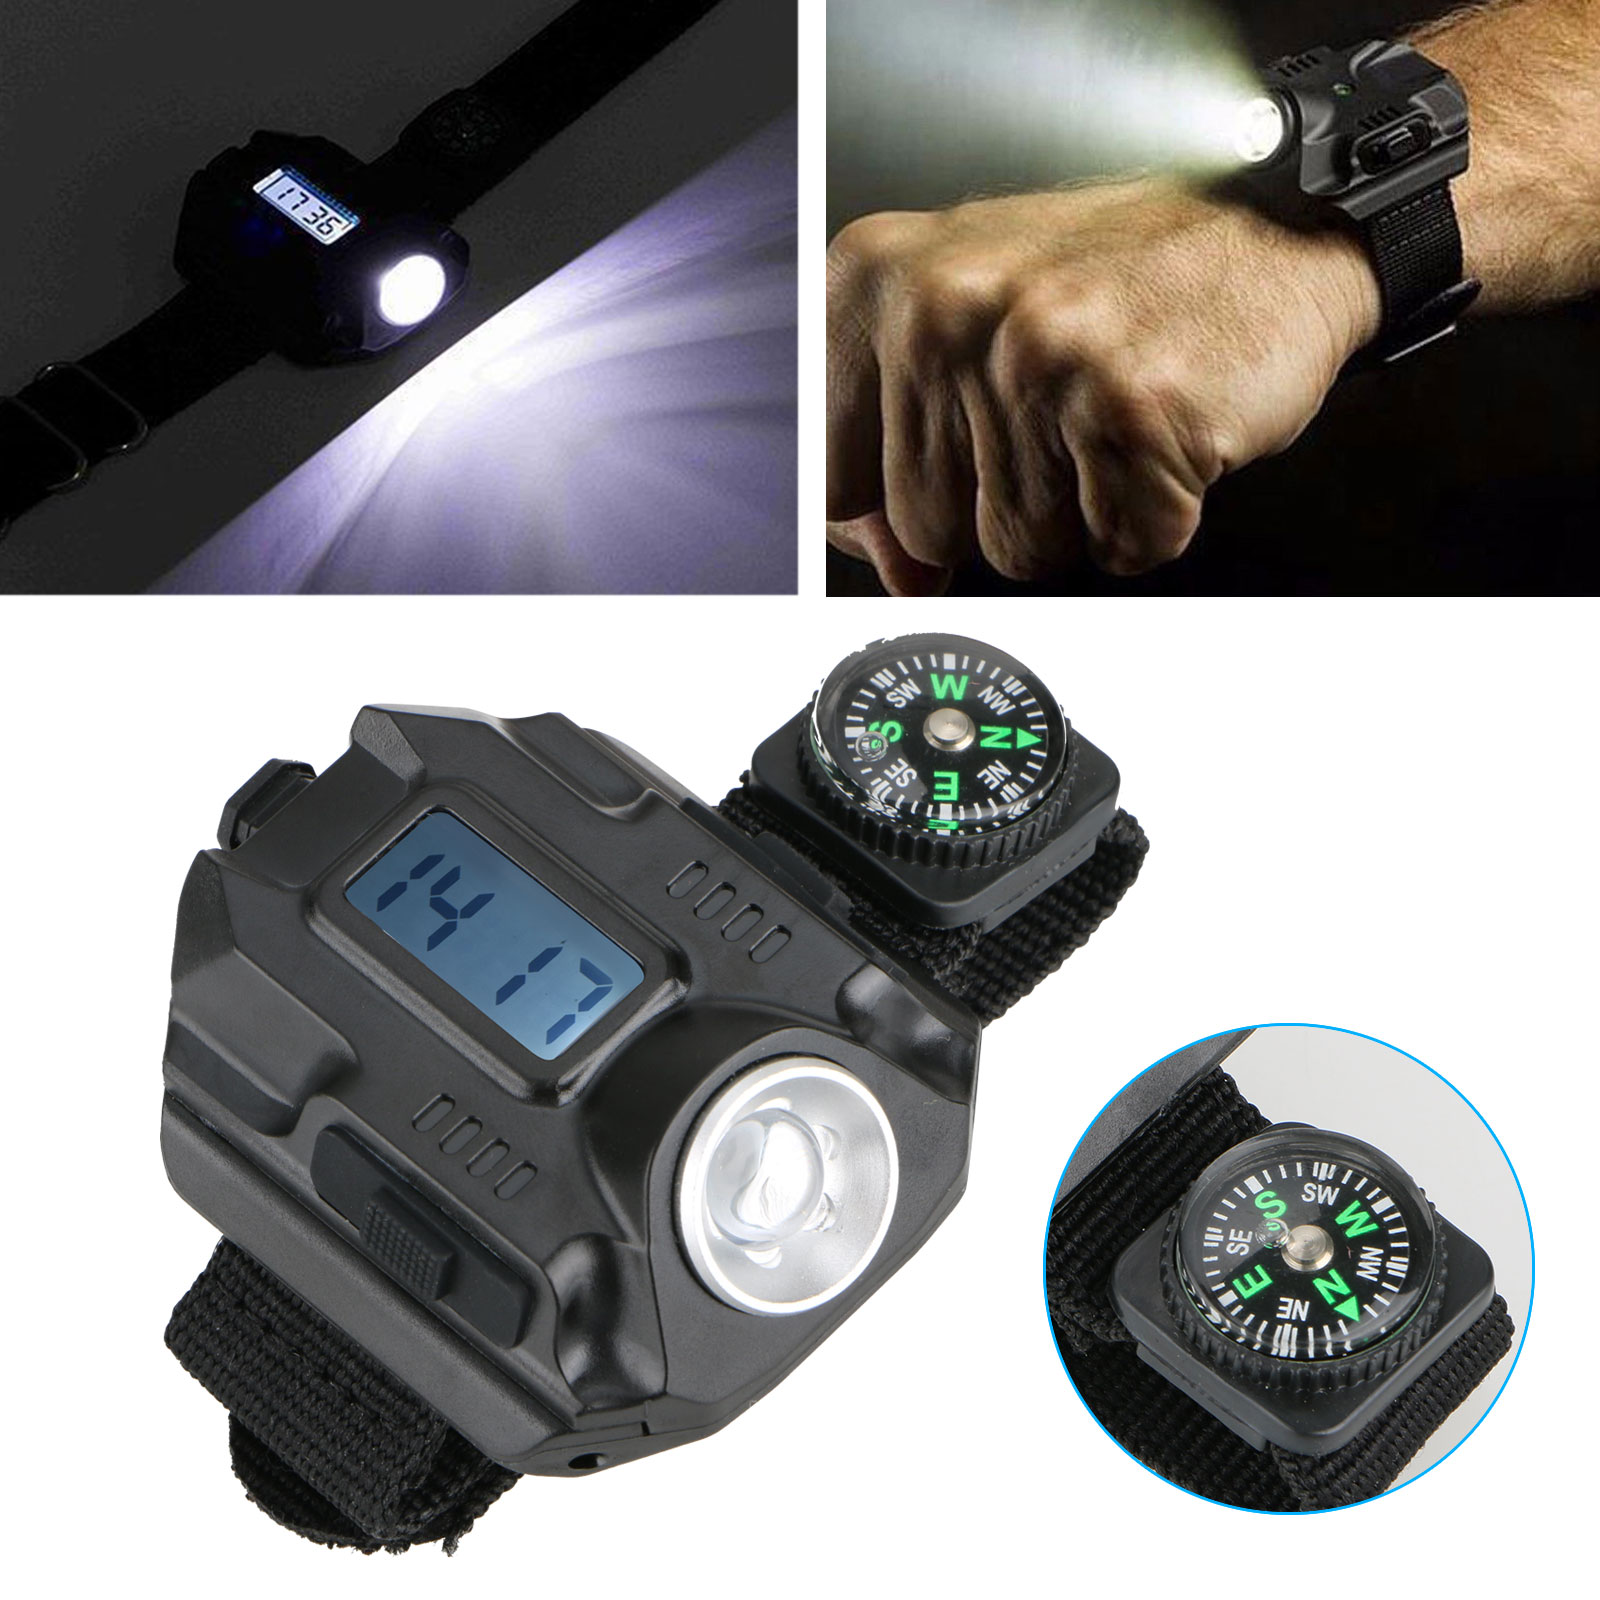 LED Rechargeable Wrist Watch Flashlight, Super Bright Waterproof LED Wristlight with Compass Tactical Flashlights for Outdoor Running, Hiking, Camping, Biking